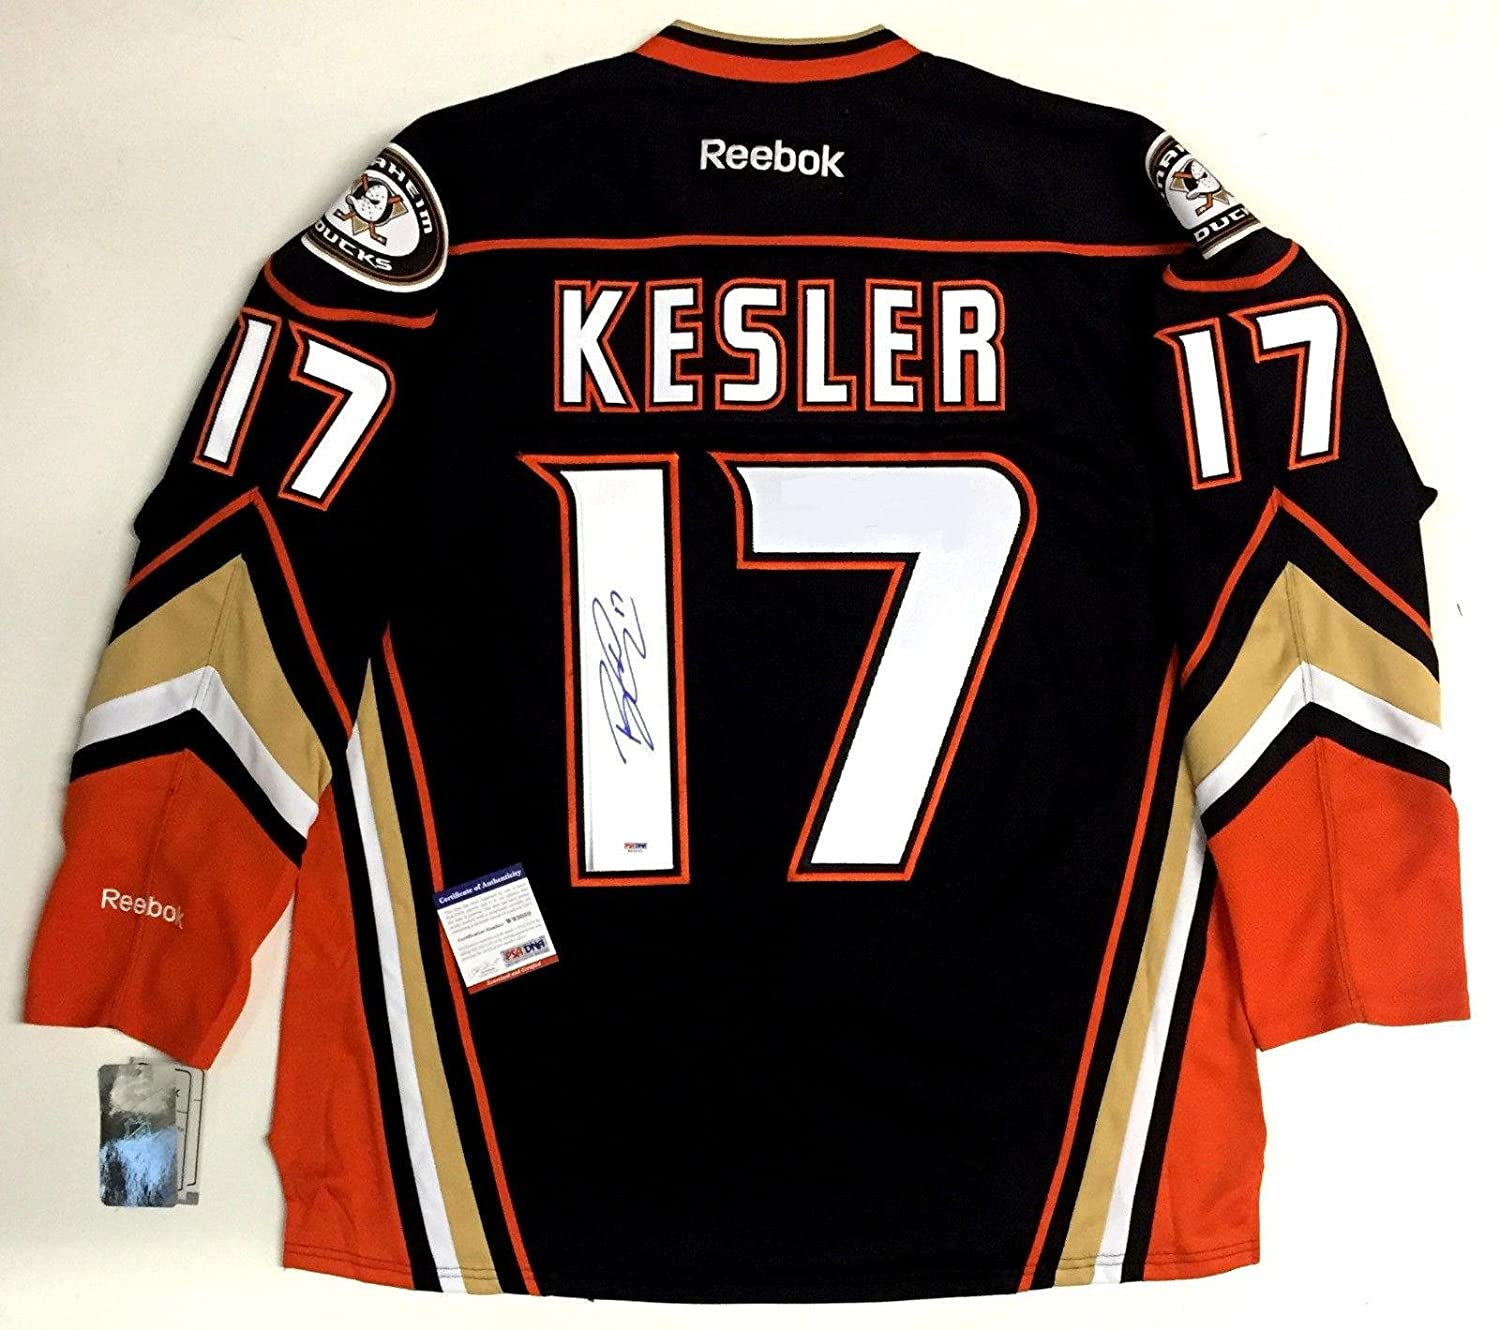 competitive price a5599 1dc9e Ryan Kesler Autographed Jersey - Anaheim Ducks Reebok ...